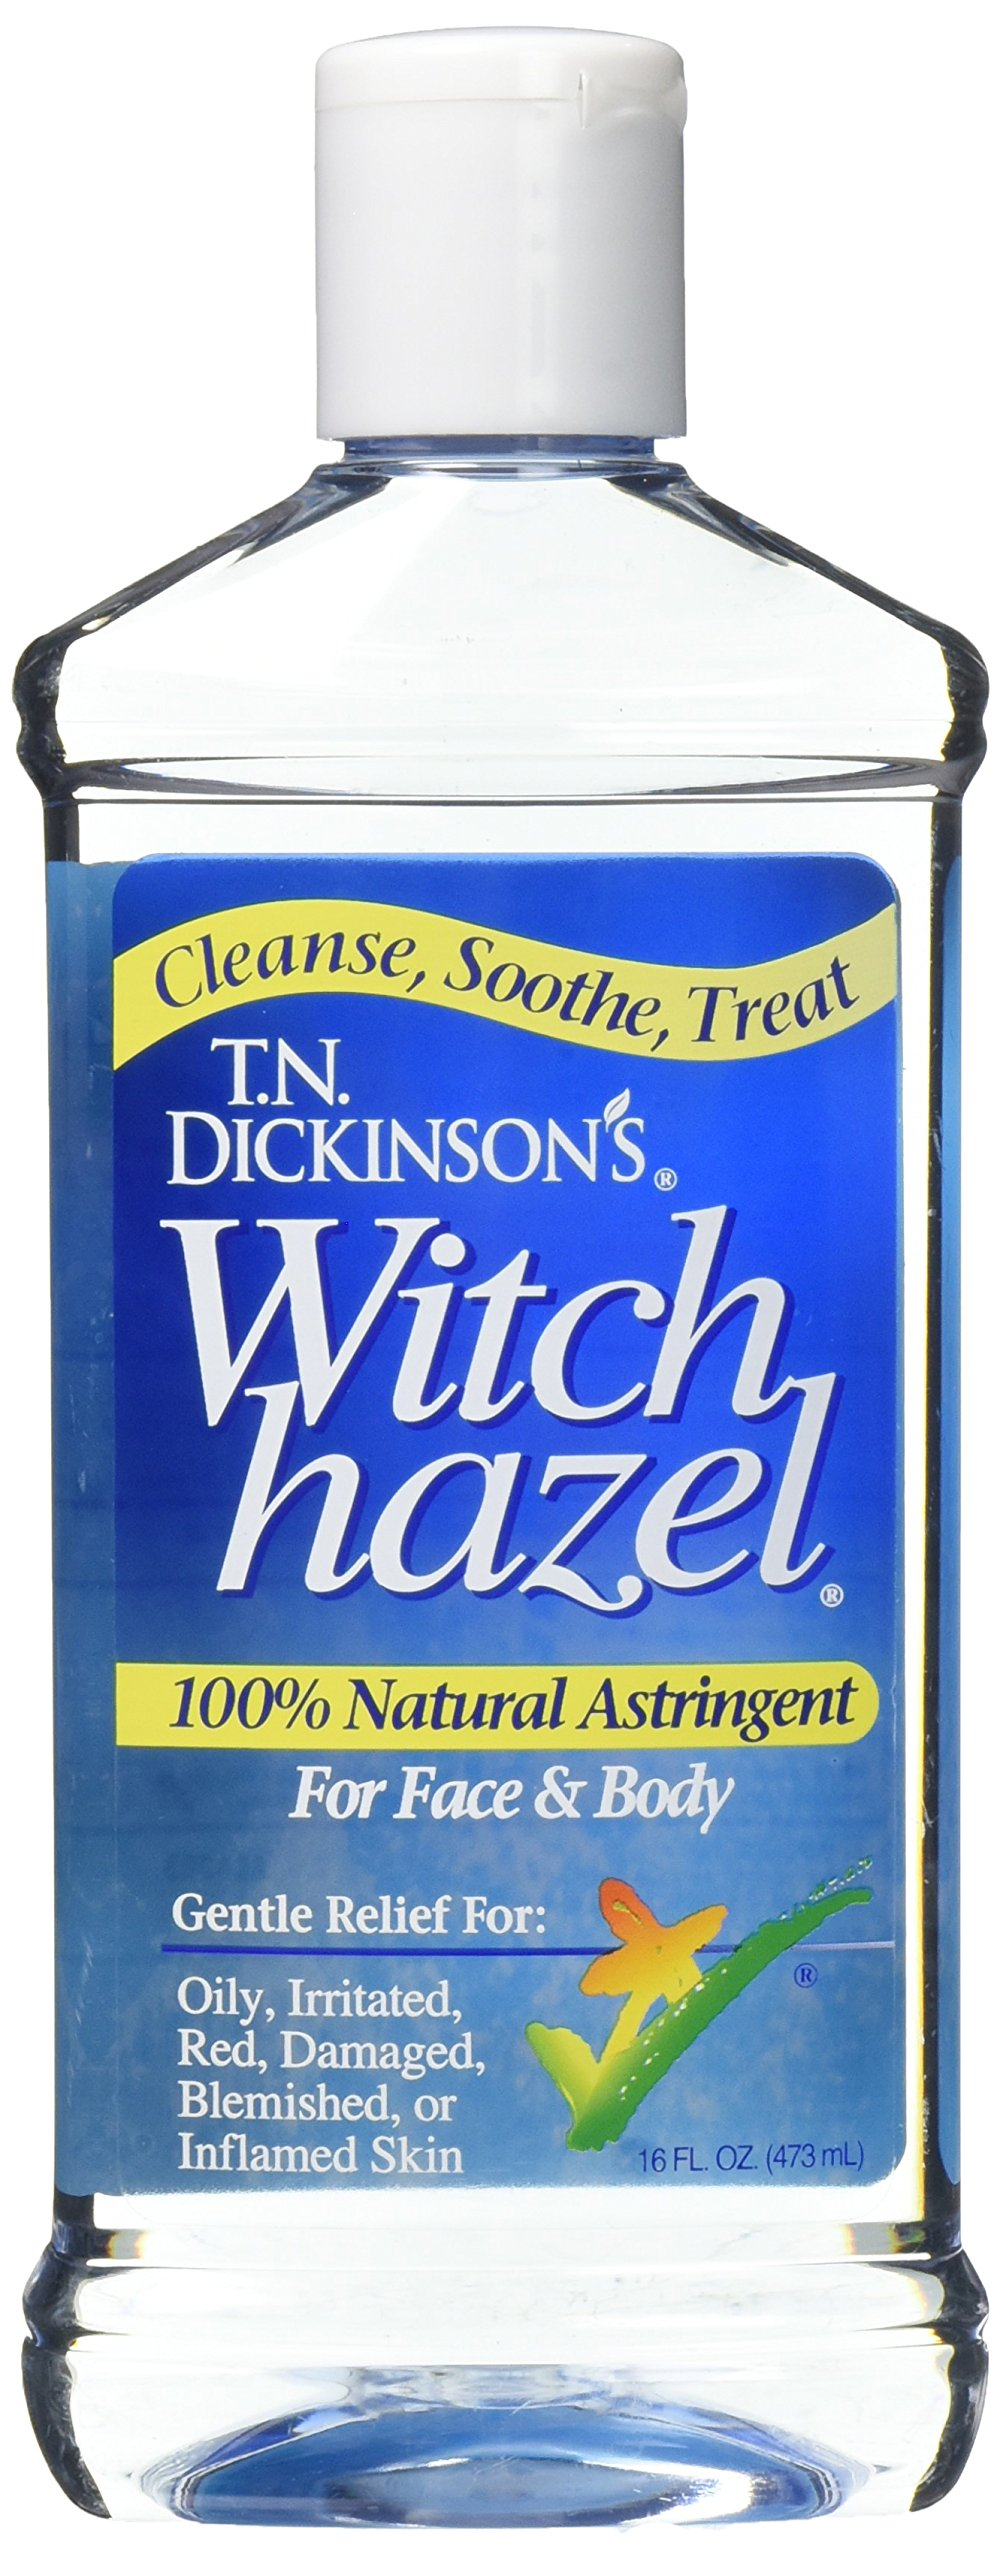 T.N. Dickinson's Astringent, 100% Natural, Witch Hazel 16 fl oz (473 ml) (2 Pack) by by Lotus